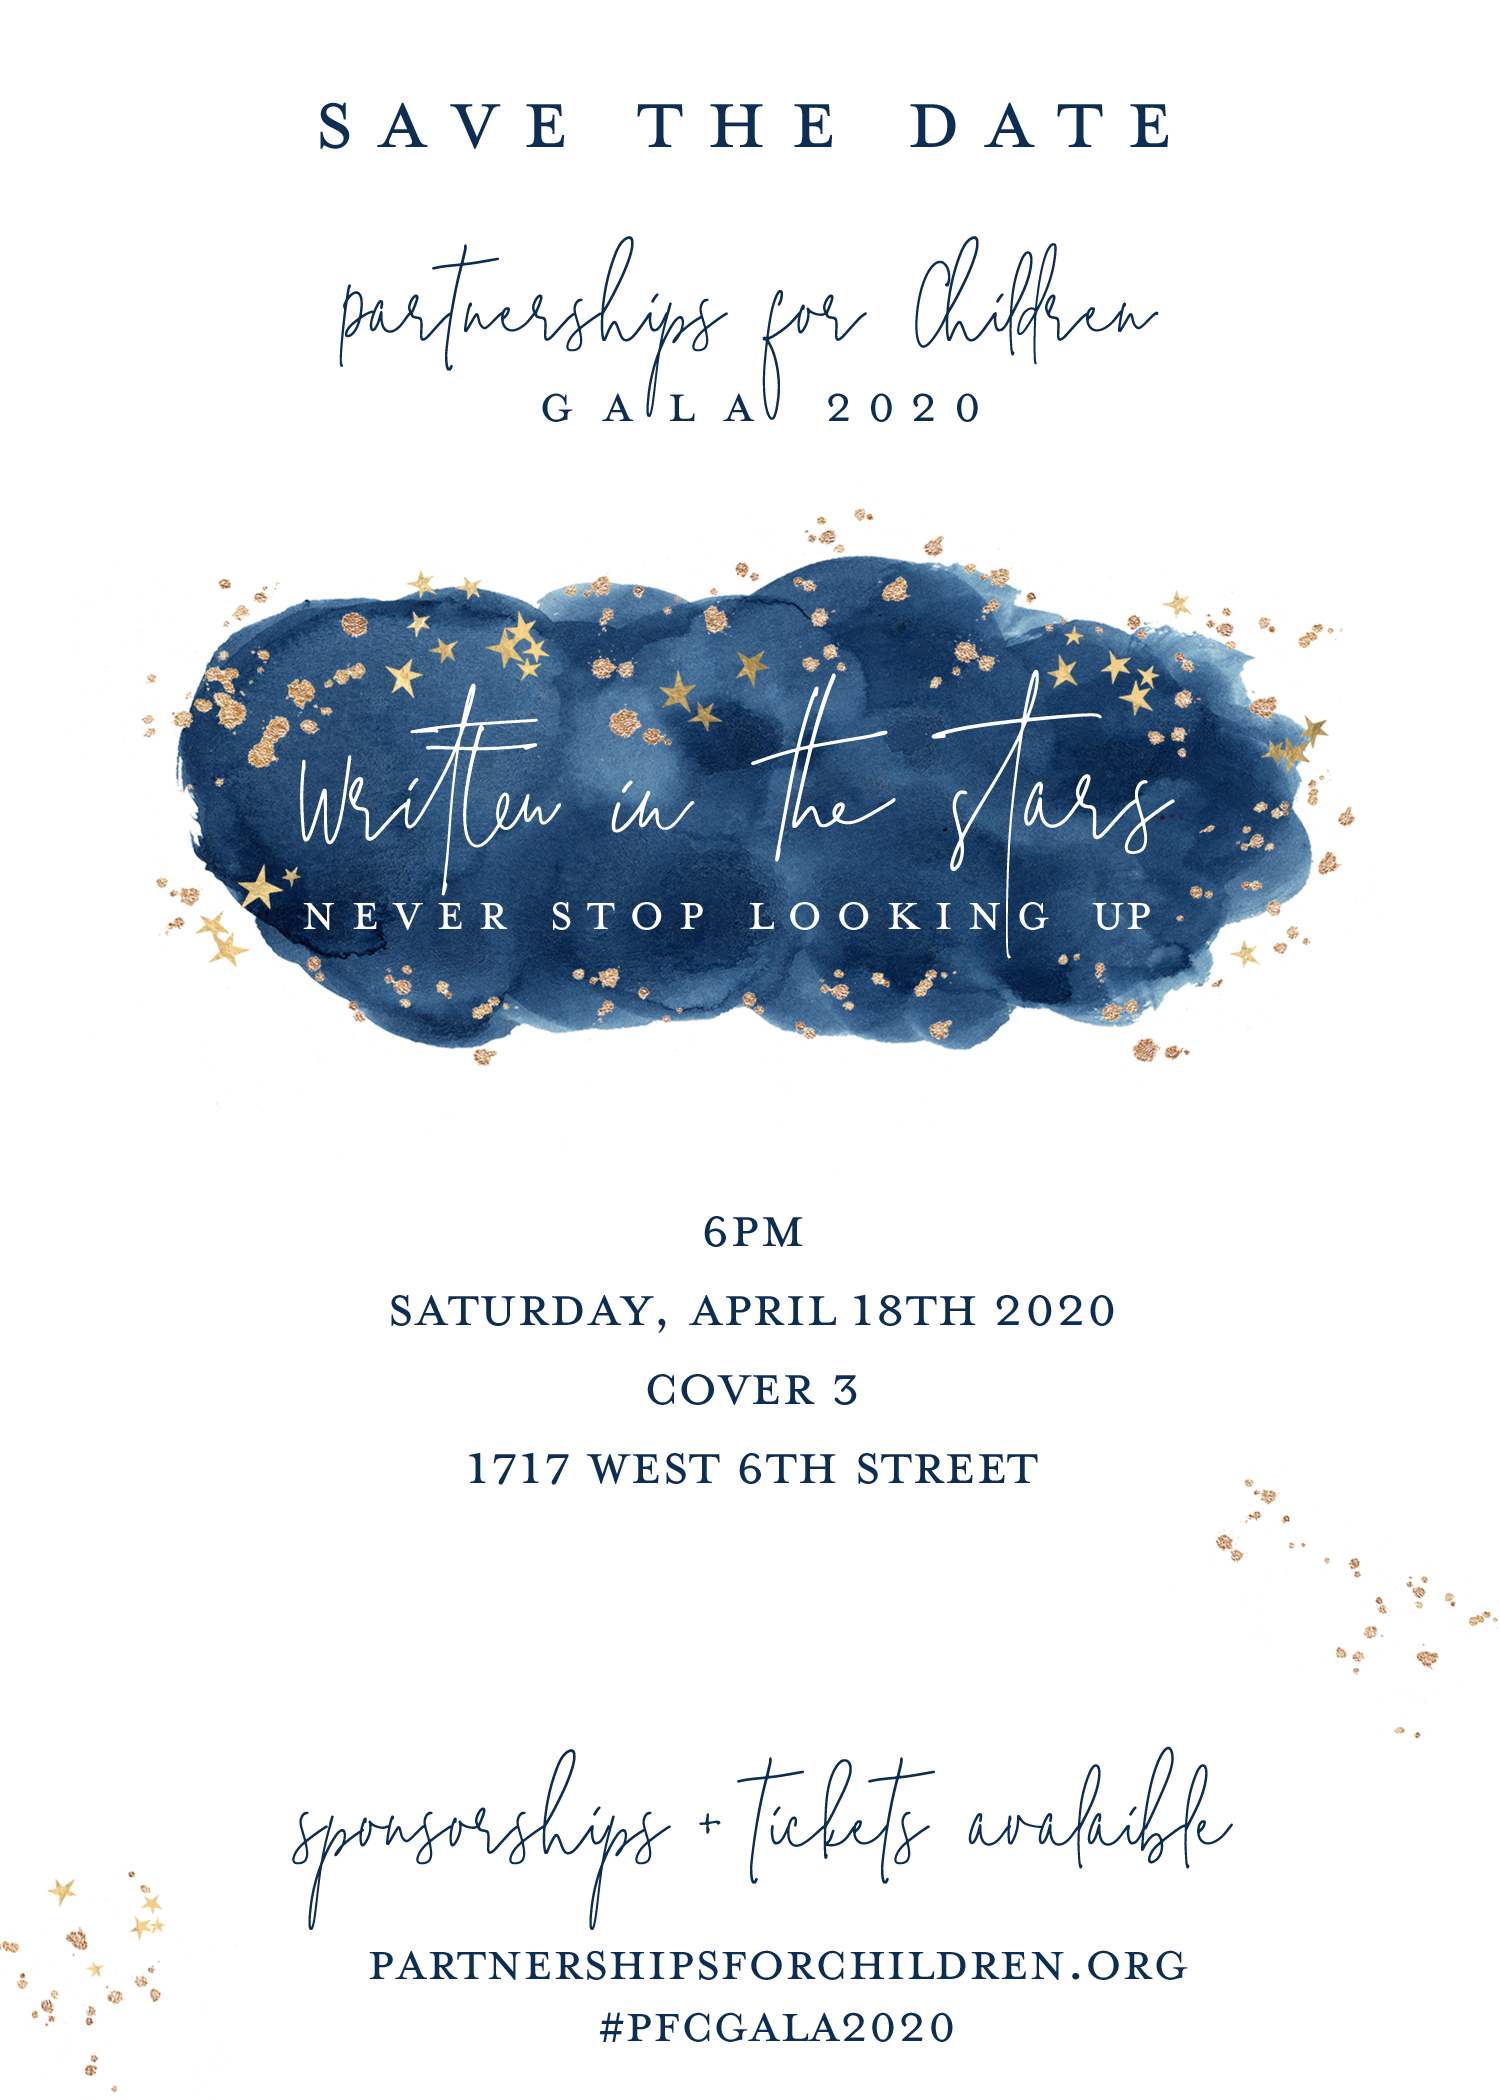 UPDATED Gala Save the Date